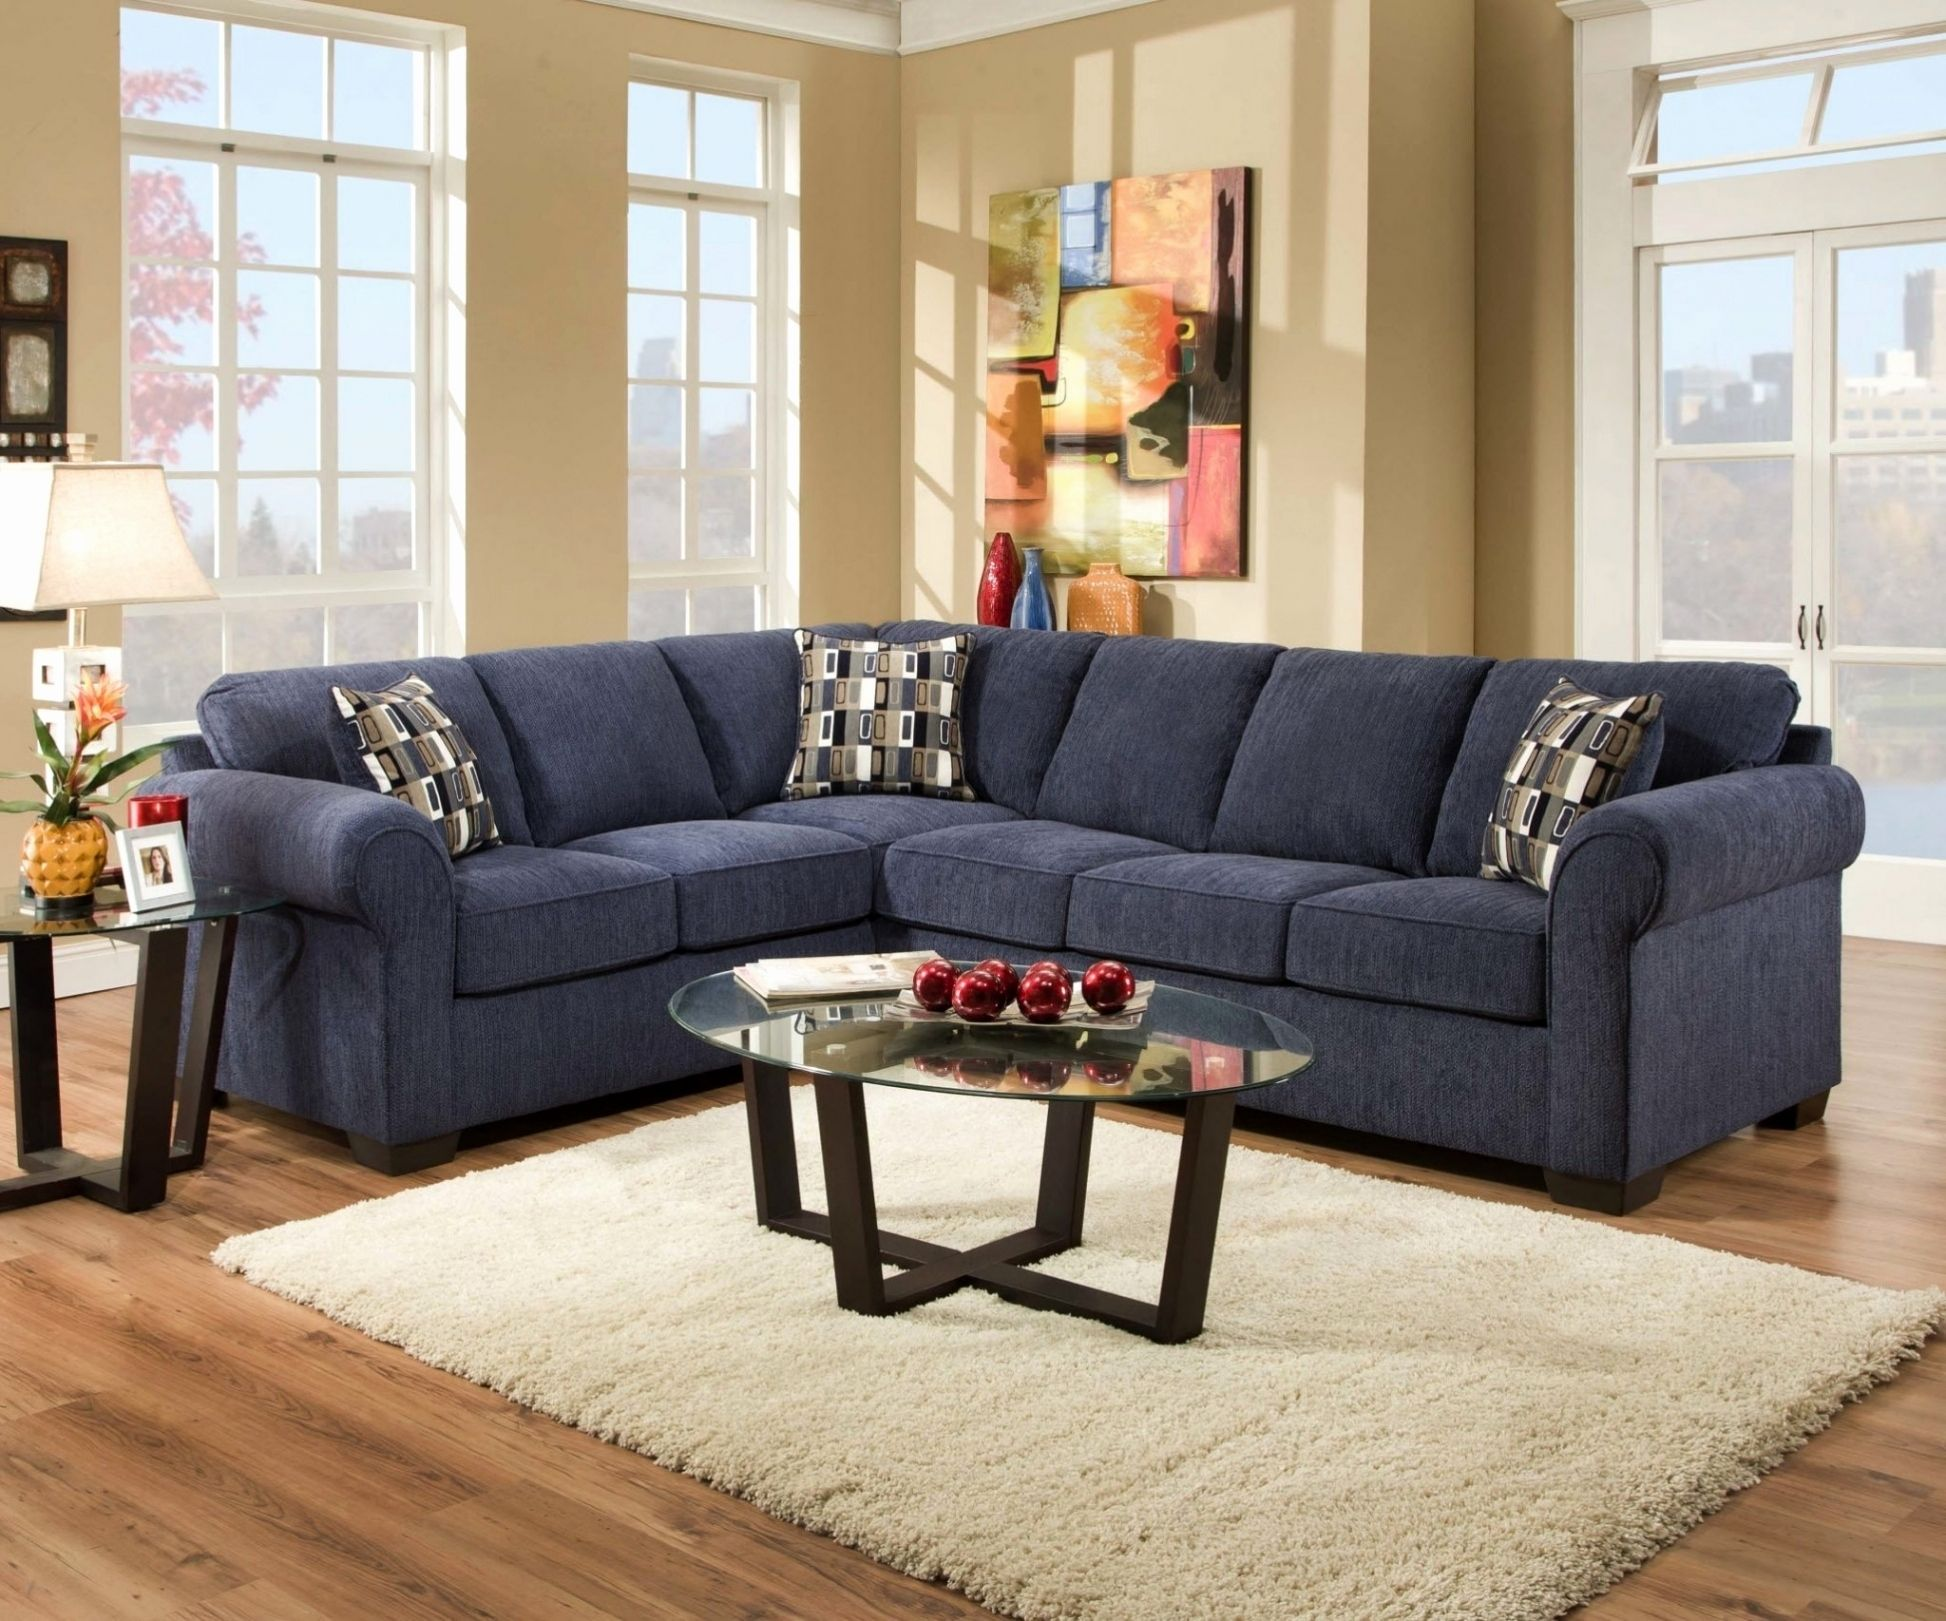 sofa Navy Blue Velvet Sectional Sofa Houston Texas Tags ...